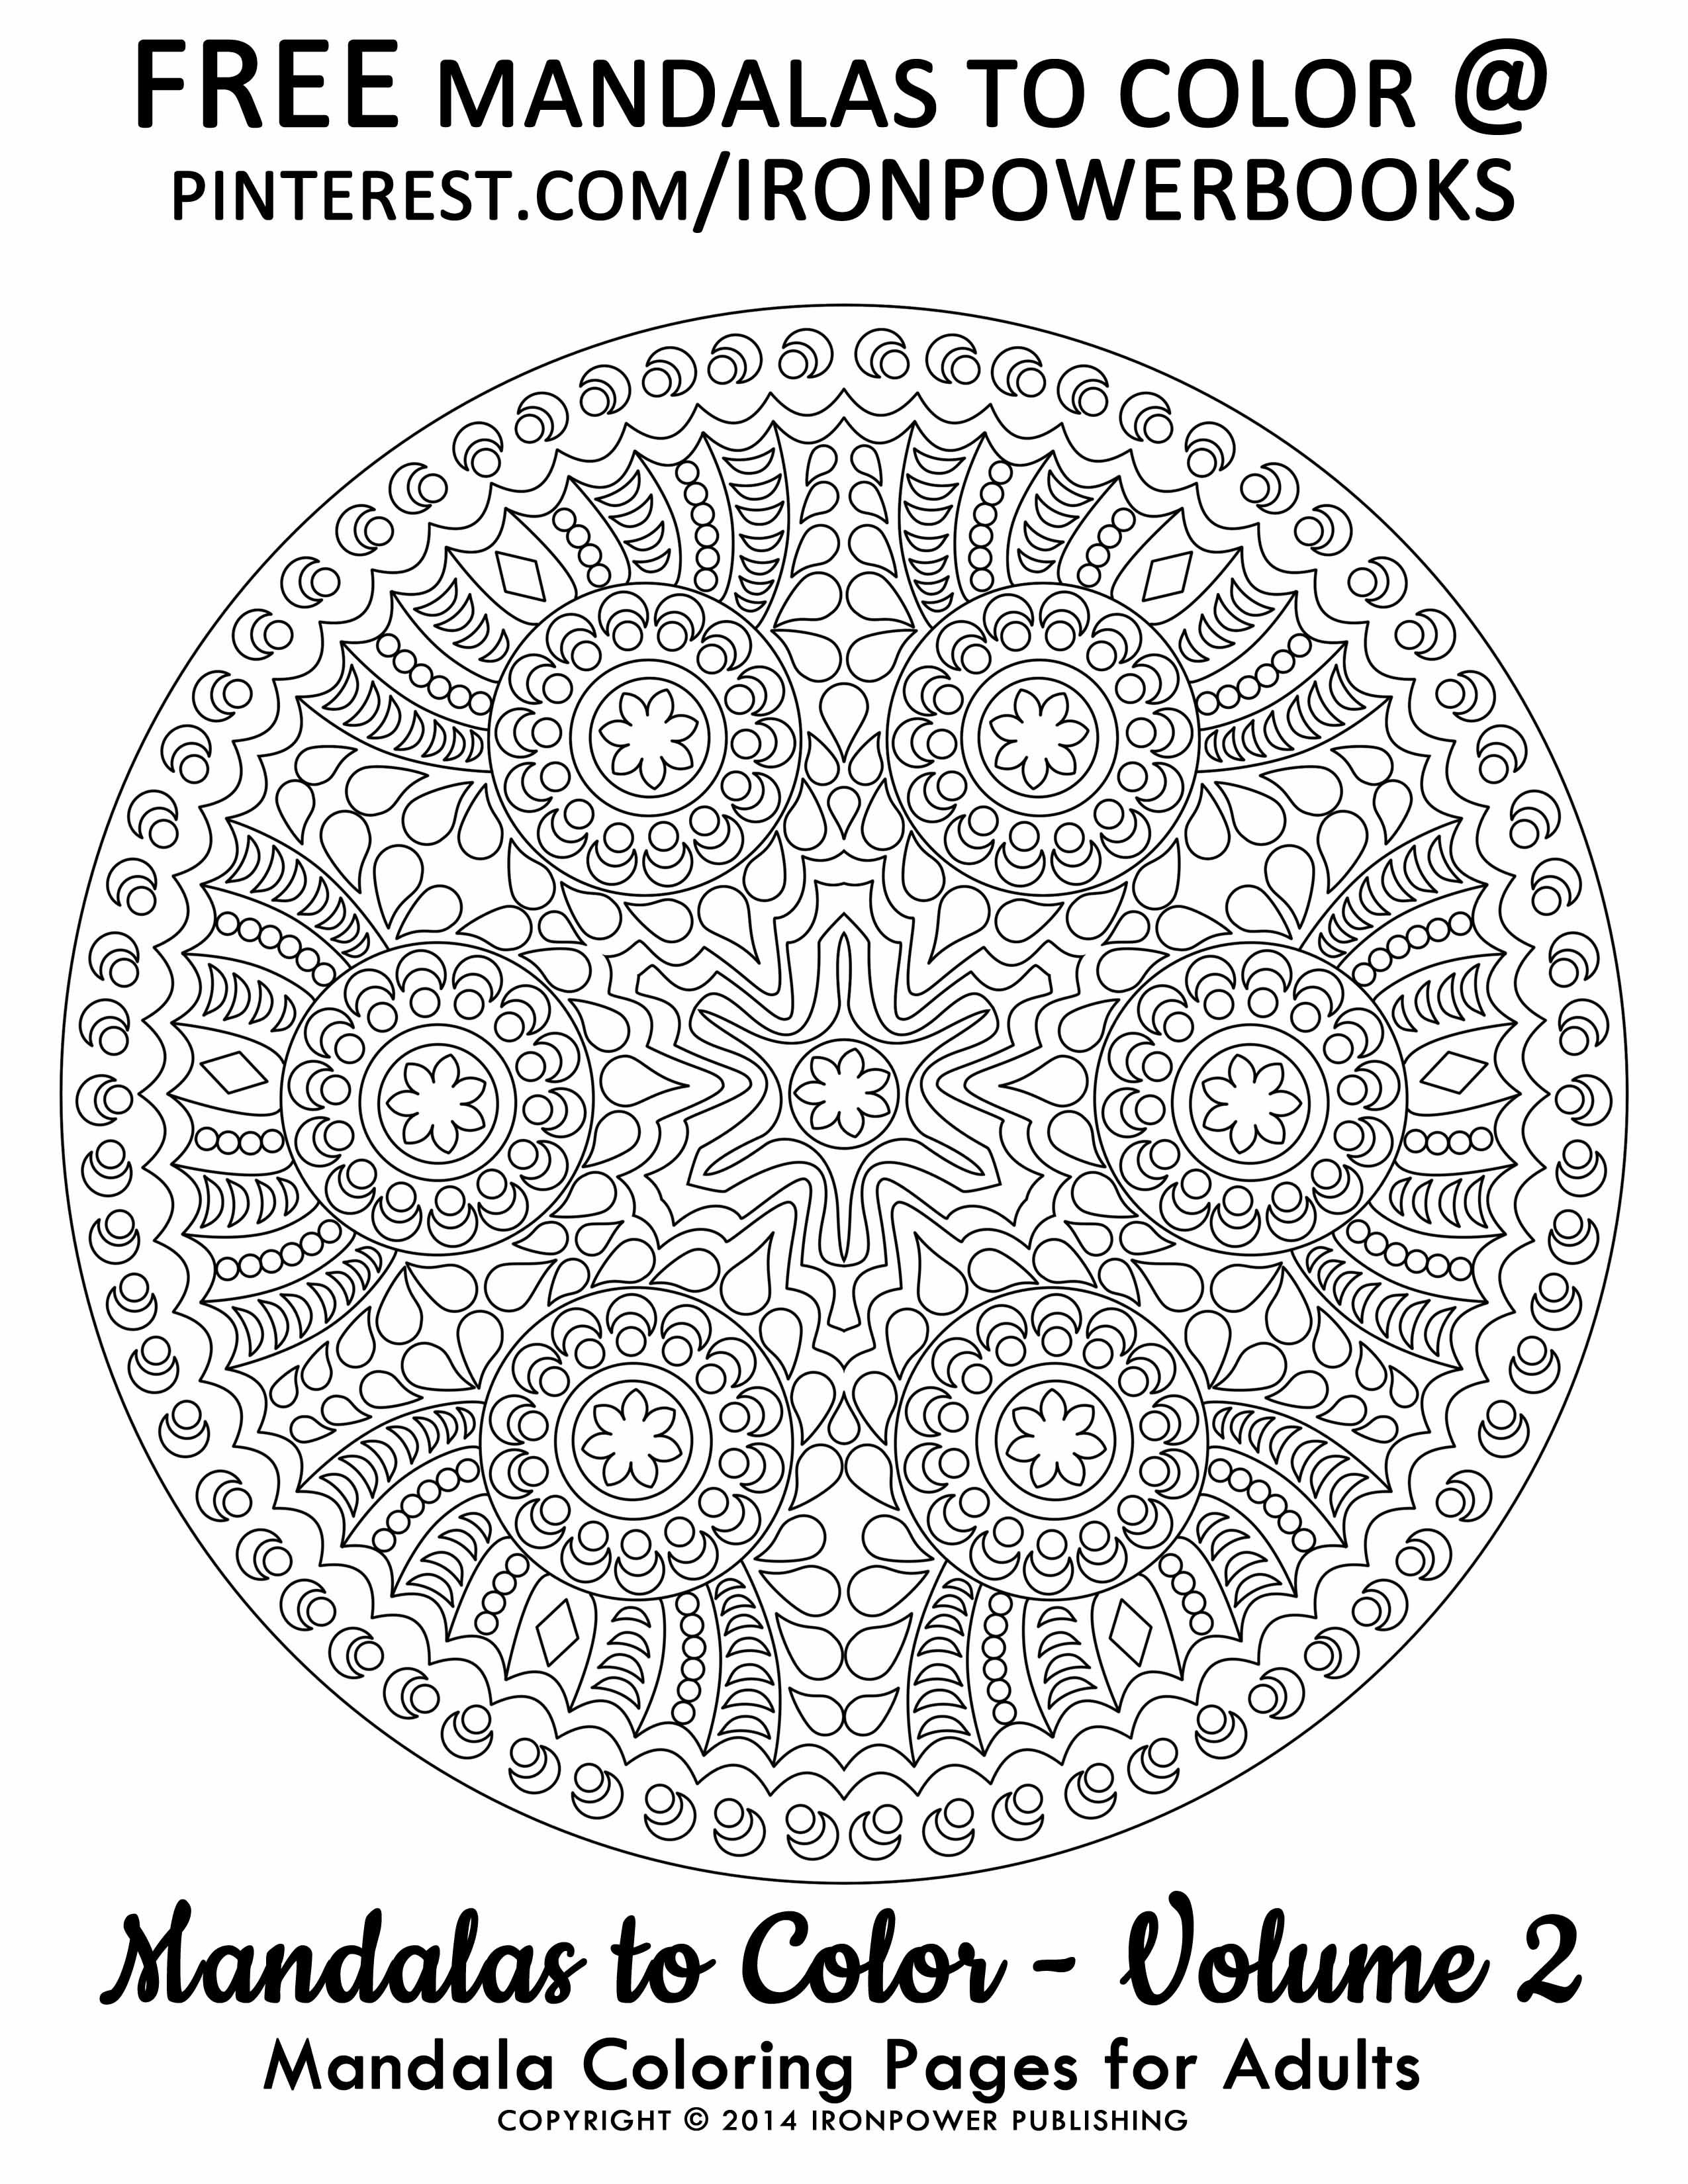 Mandala coloring pages amazon - Free Mandala Coloring Pages From The Book Of Ironpower Publishing S Mandalas To Color Volume 2 At